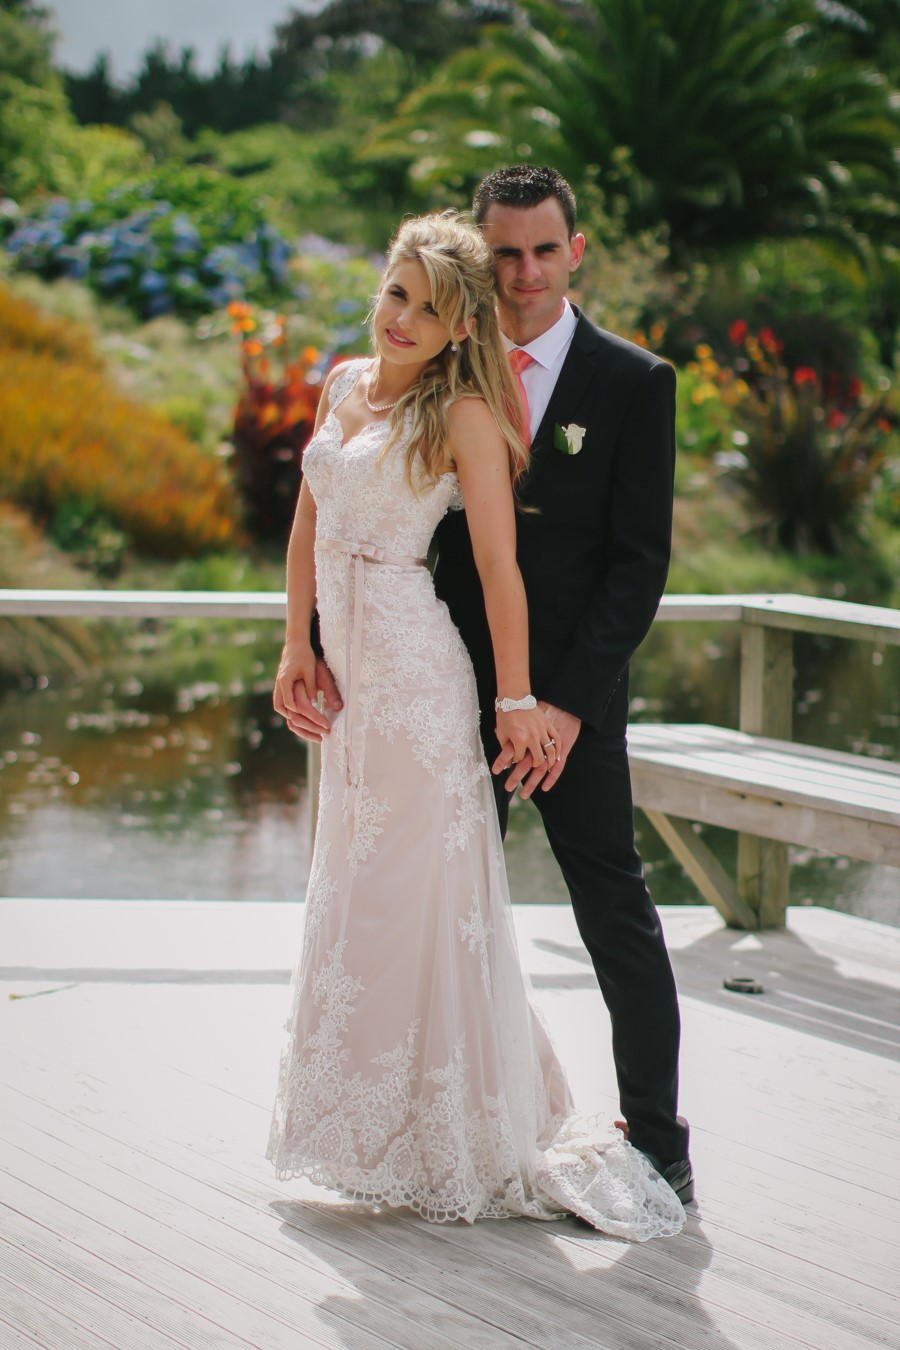 silverdale_wedding_nz_photographer-163